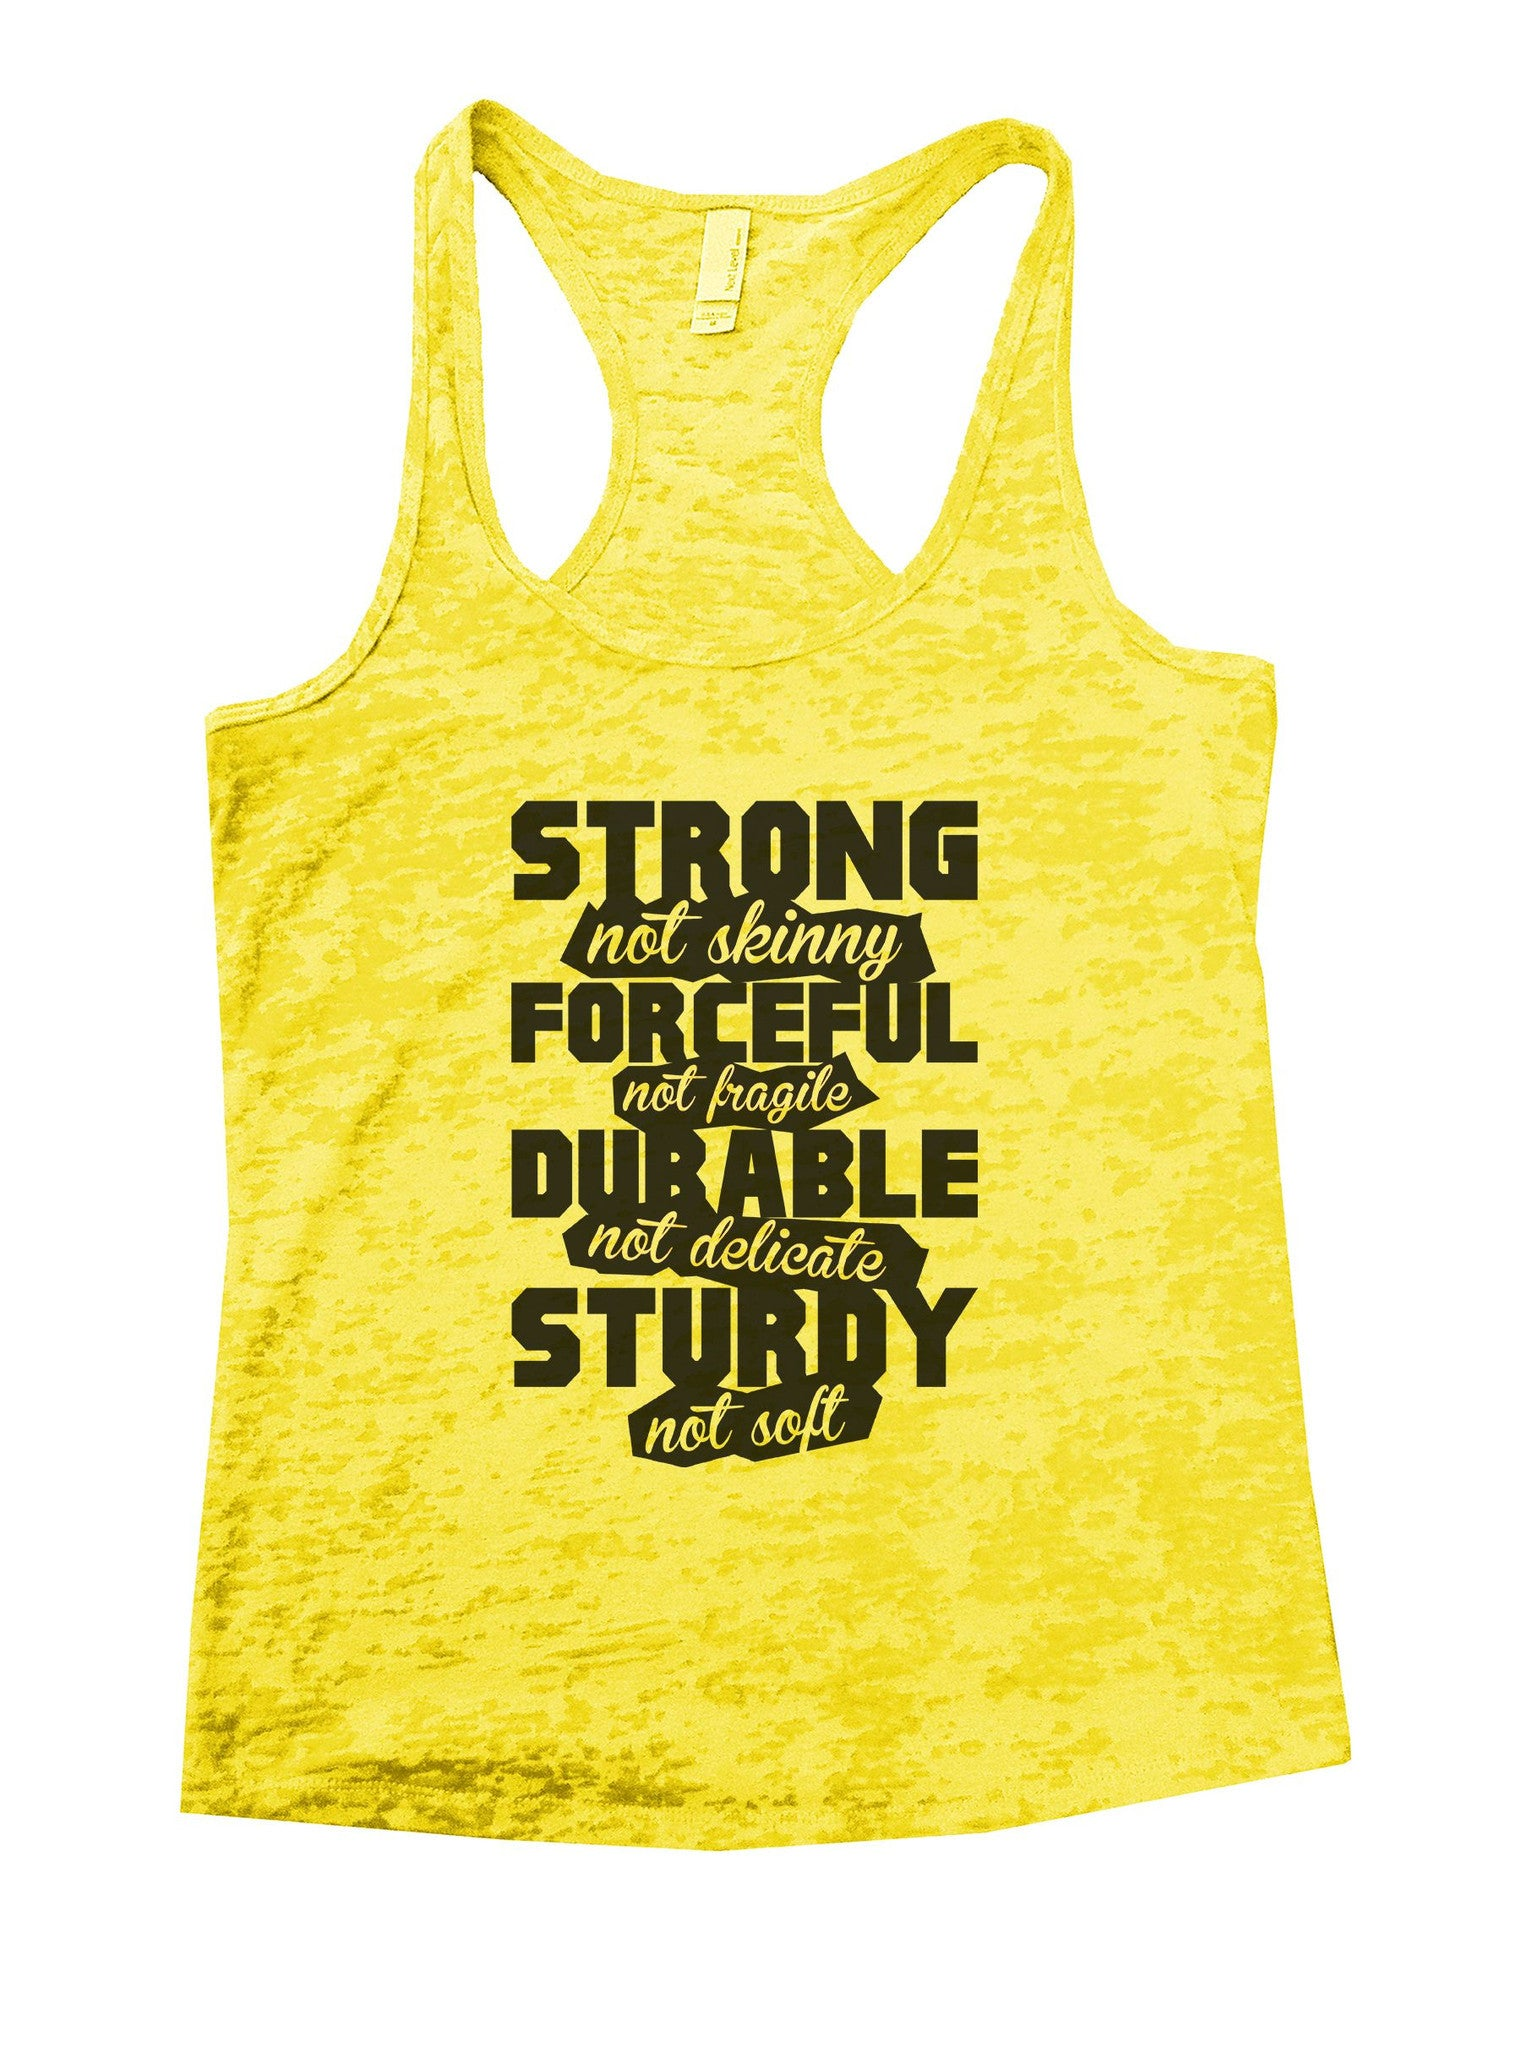 Strong Not Skinny Forceful Not Fragile Durable Not Delicate Sturdy Not Soft Burnout Tank Top By BurnoutTankTops.com - 845 - Funny Shirts Tank Tops Burnouts and Triblends  - 7